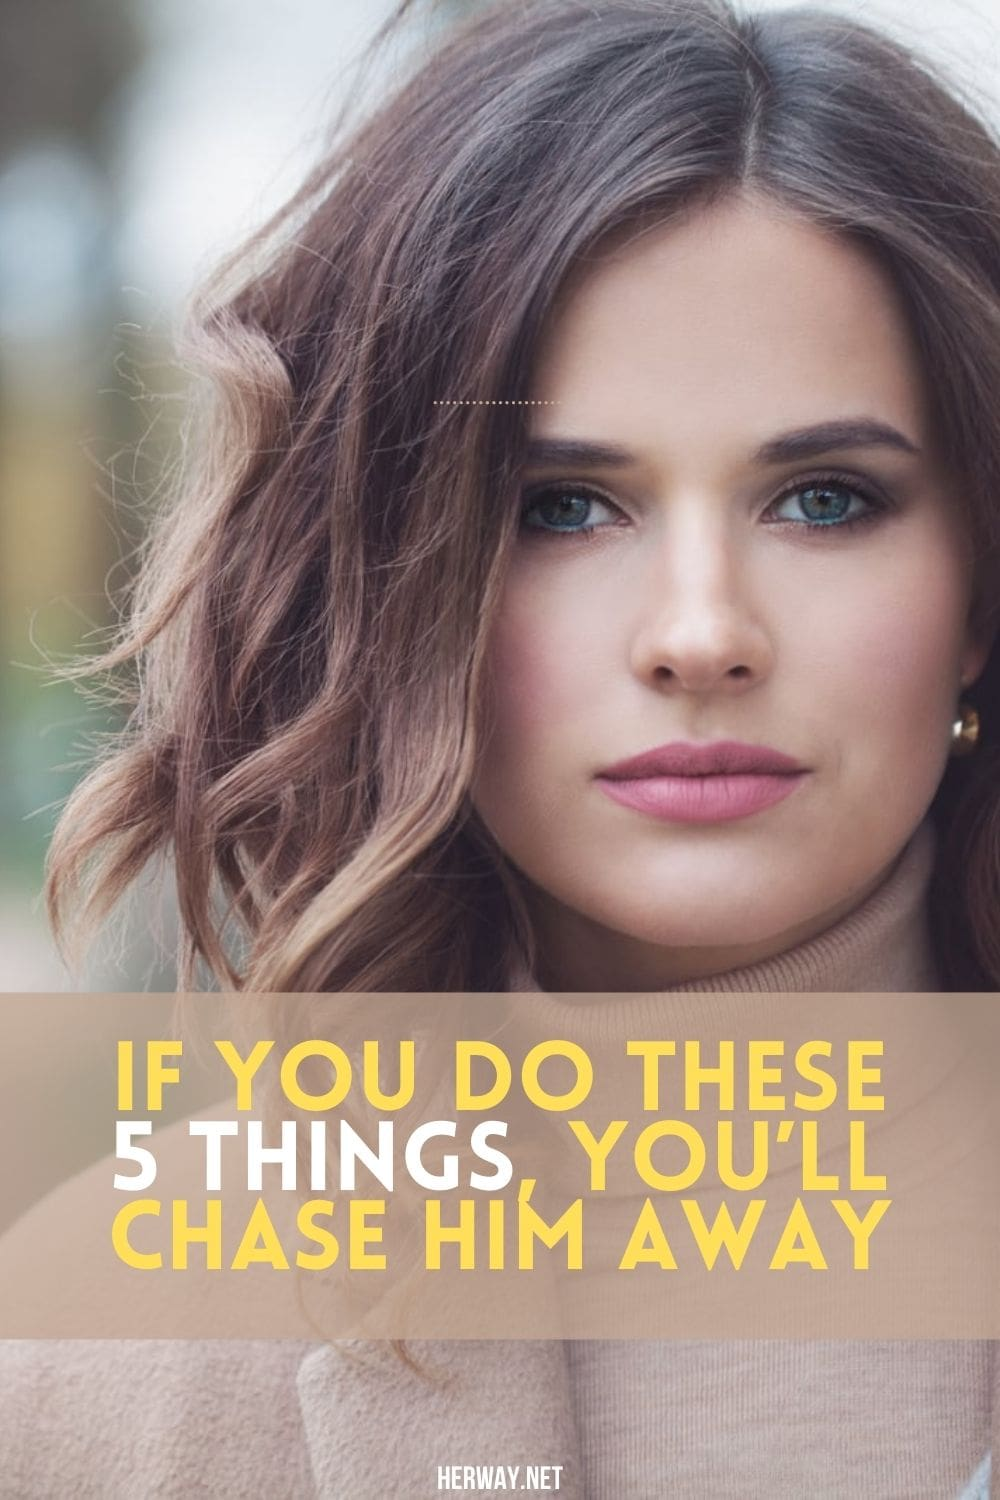 If You Do These 5 Things, You'll Chase Him Away